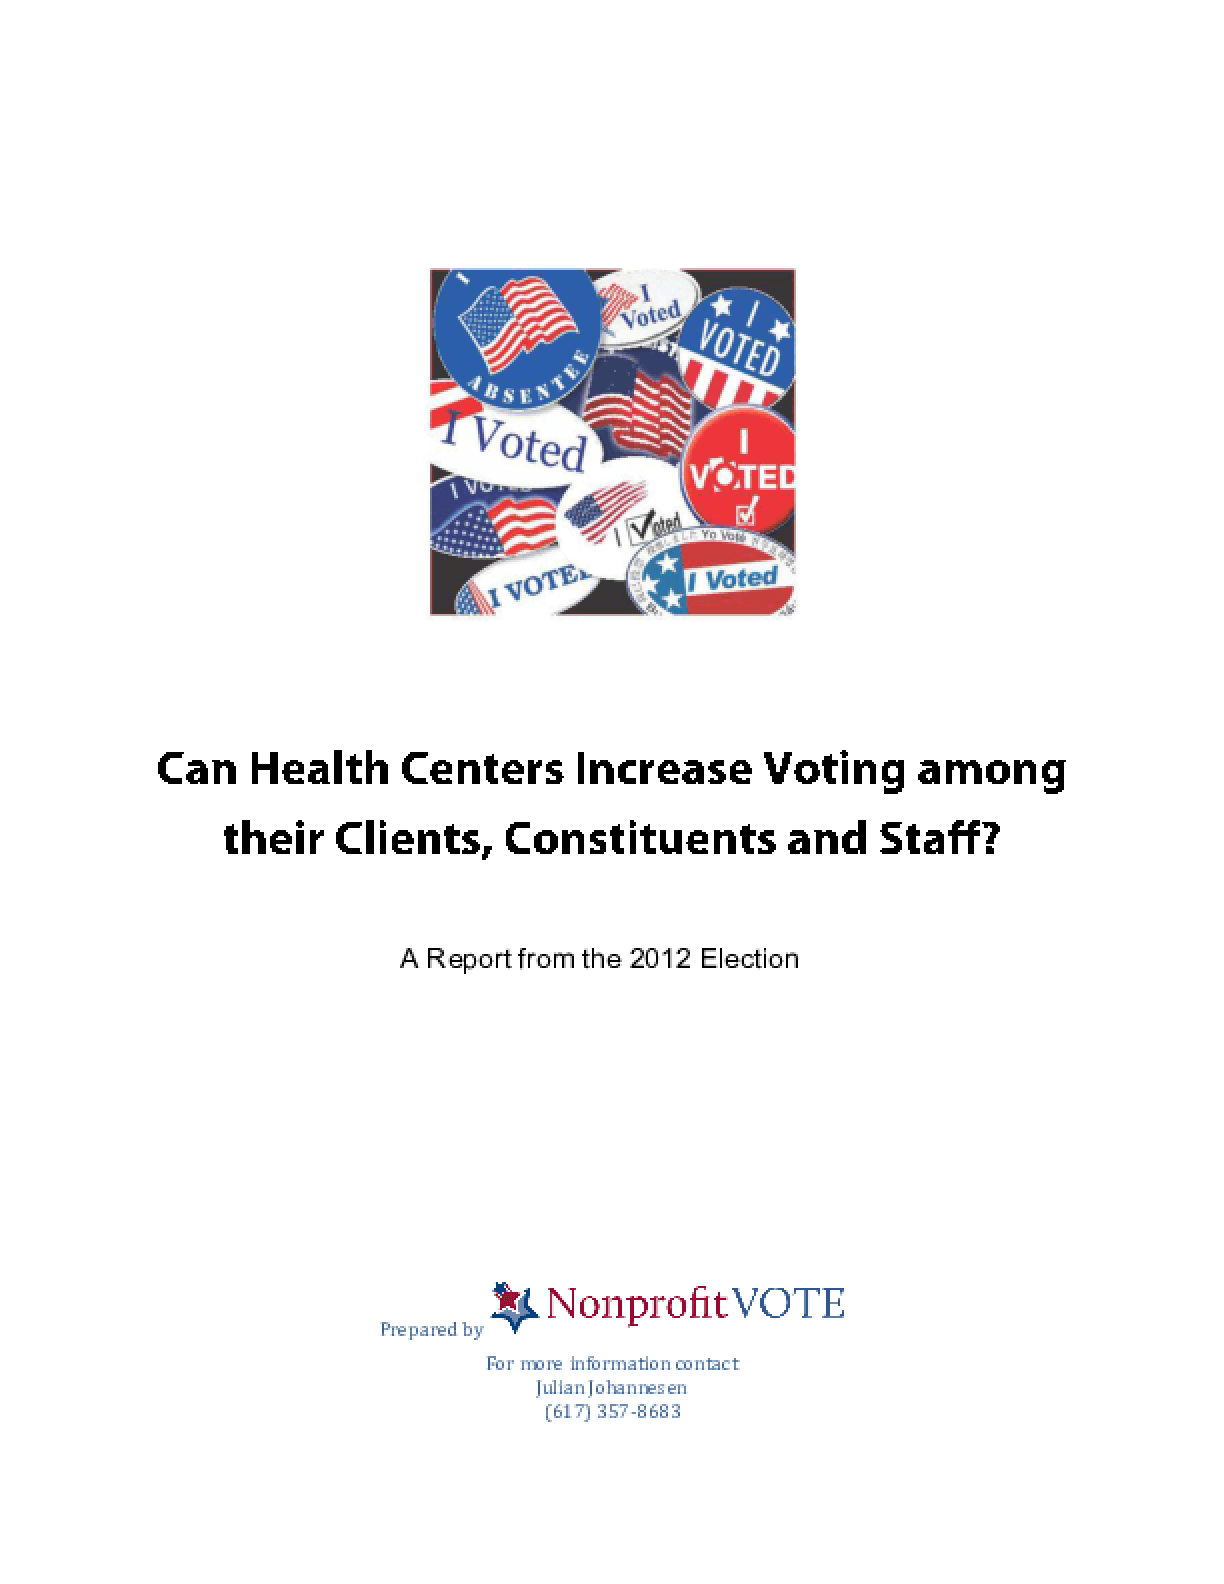 Can Health Centers Increase Voting Among Their Clients, Constituents and Staff? A Report from the 2012 Election